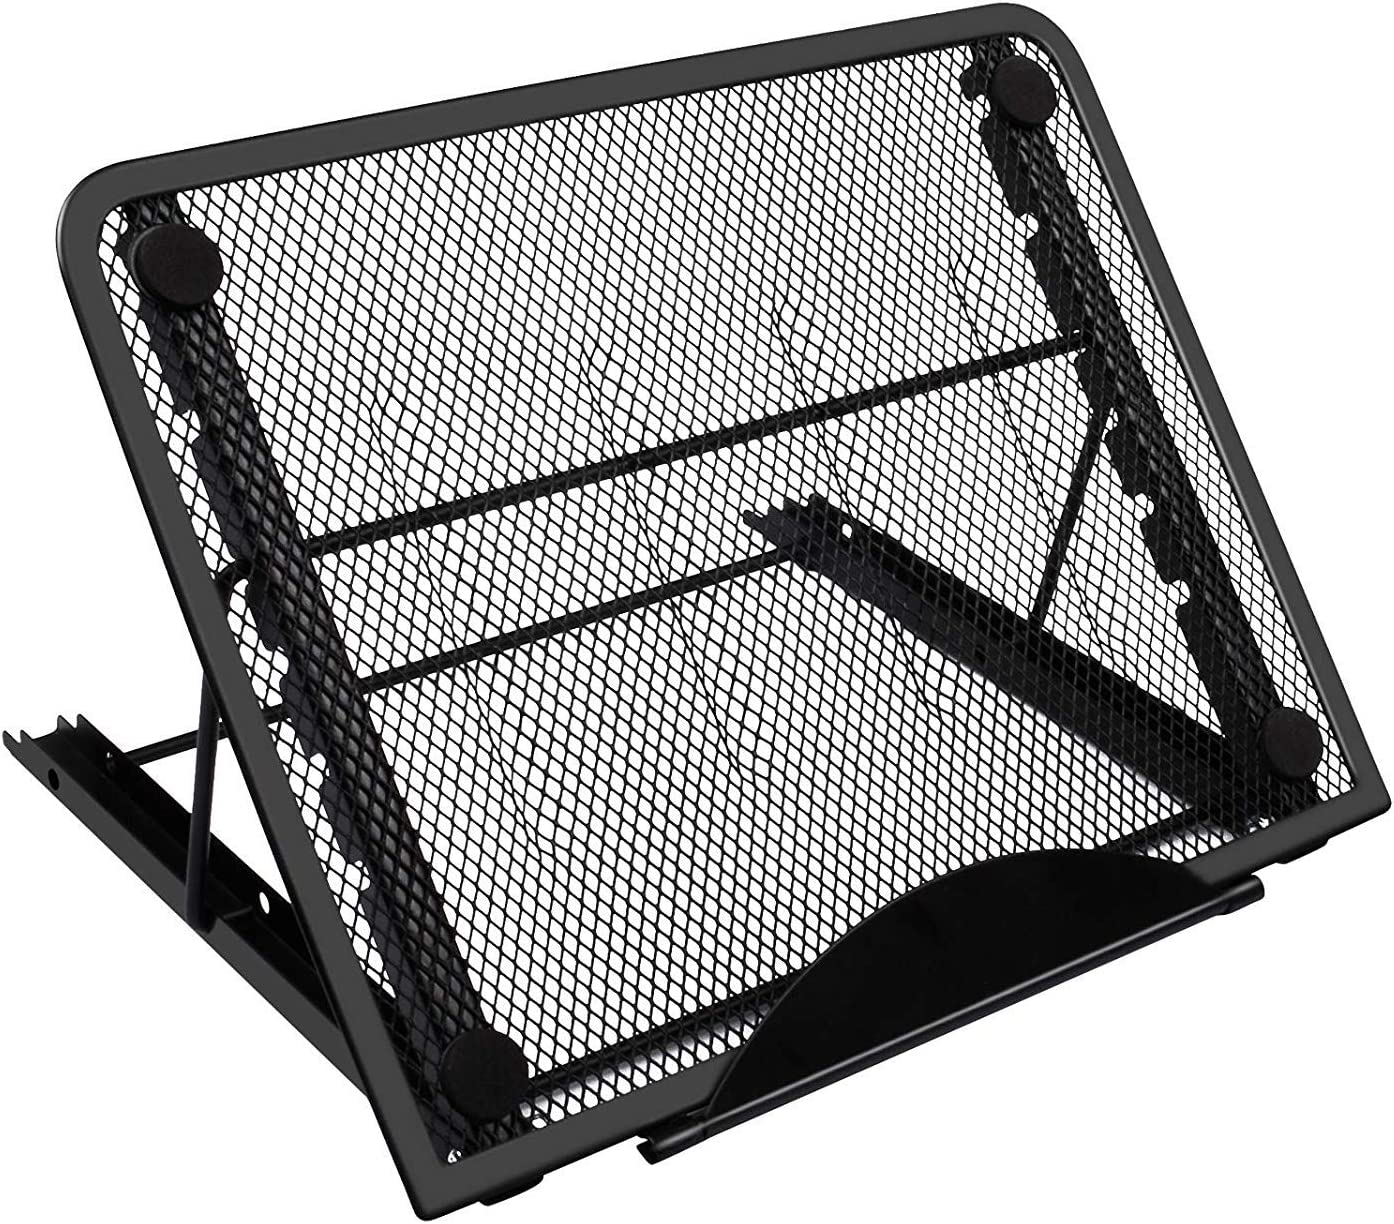 "Large Version Ventilated Adjustable Light Pad Stand, Skidding Prevented Tracing Holder for XP-Pen Artist Huion 12/"" 13.3 15.6 Drawing Monitor//Huion A2 A3 LED Tracing Light Board 12 Angle Points"